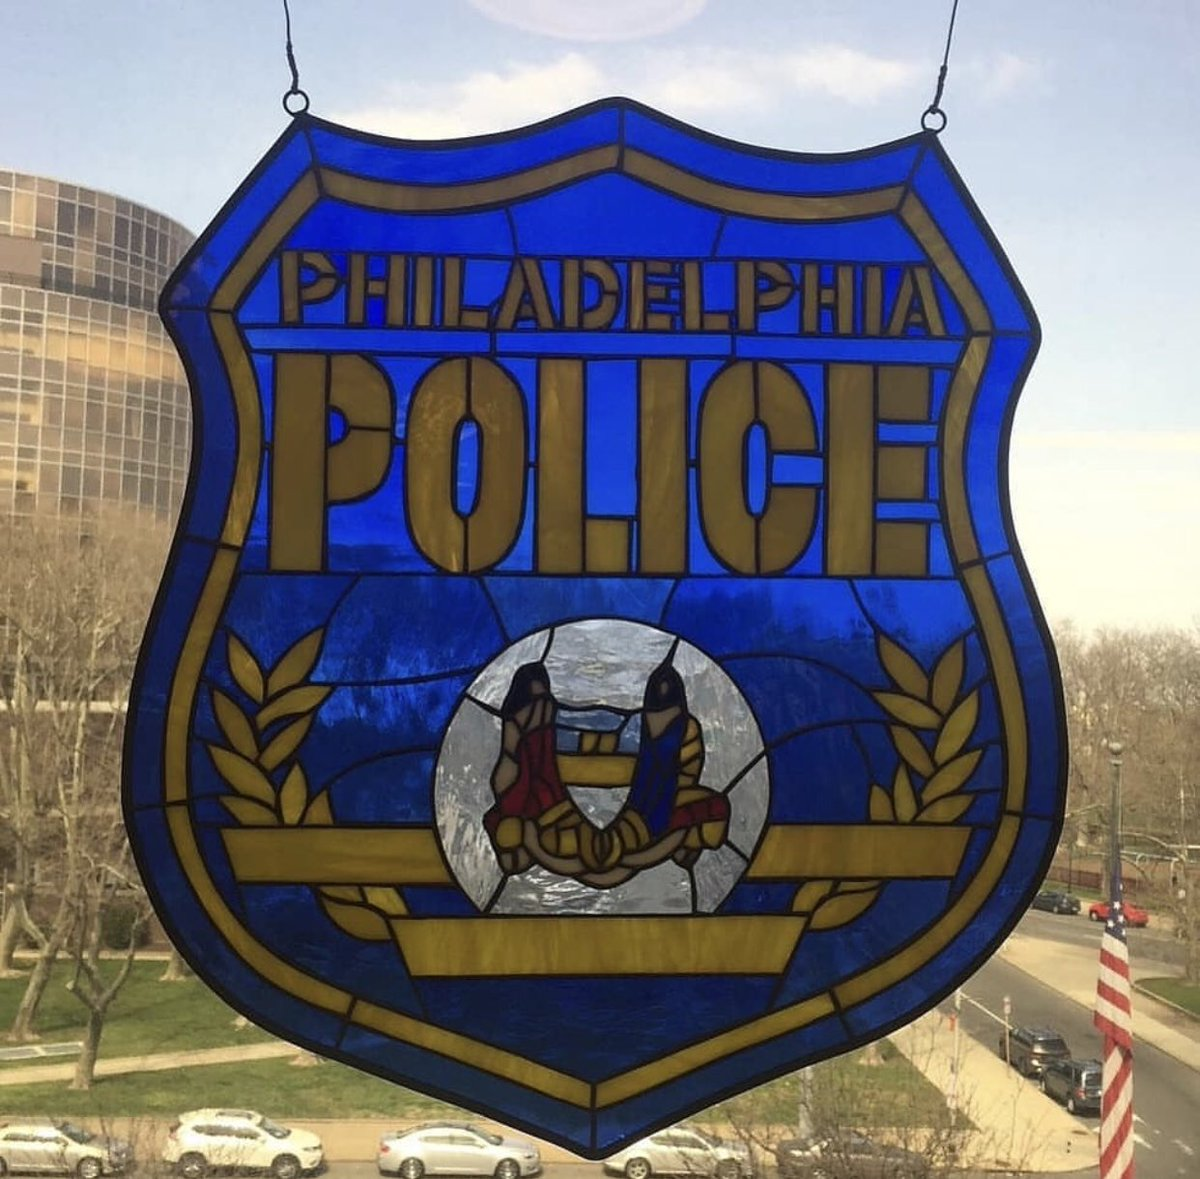 A special prayer for @PhillyPolice, its officers, their families and the community. We are keeping all of you in our hearts, thoughts and prayers. 🙏💙 #PhillyStrong #PhiladelphiaPolice